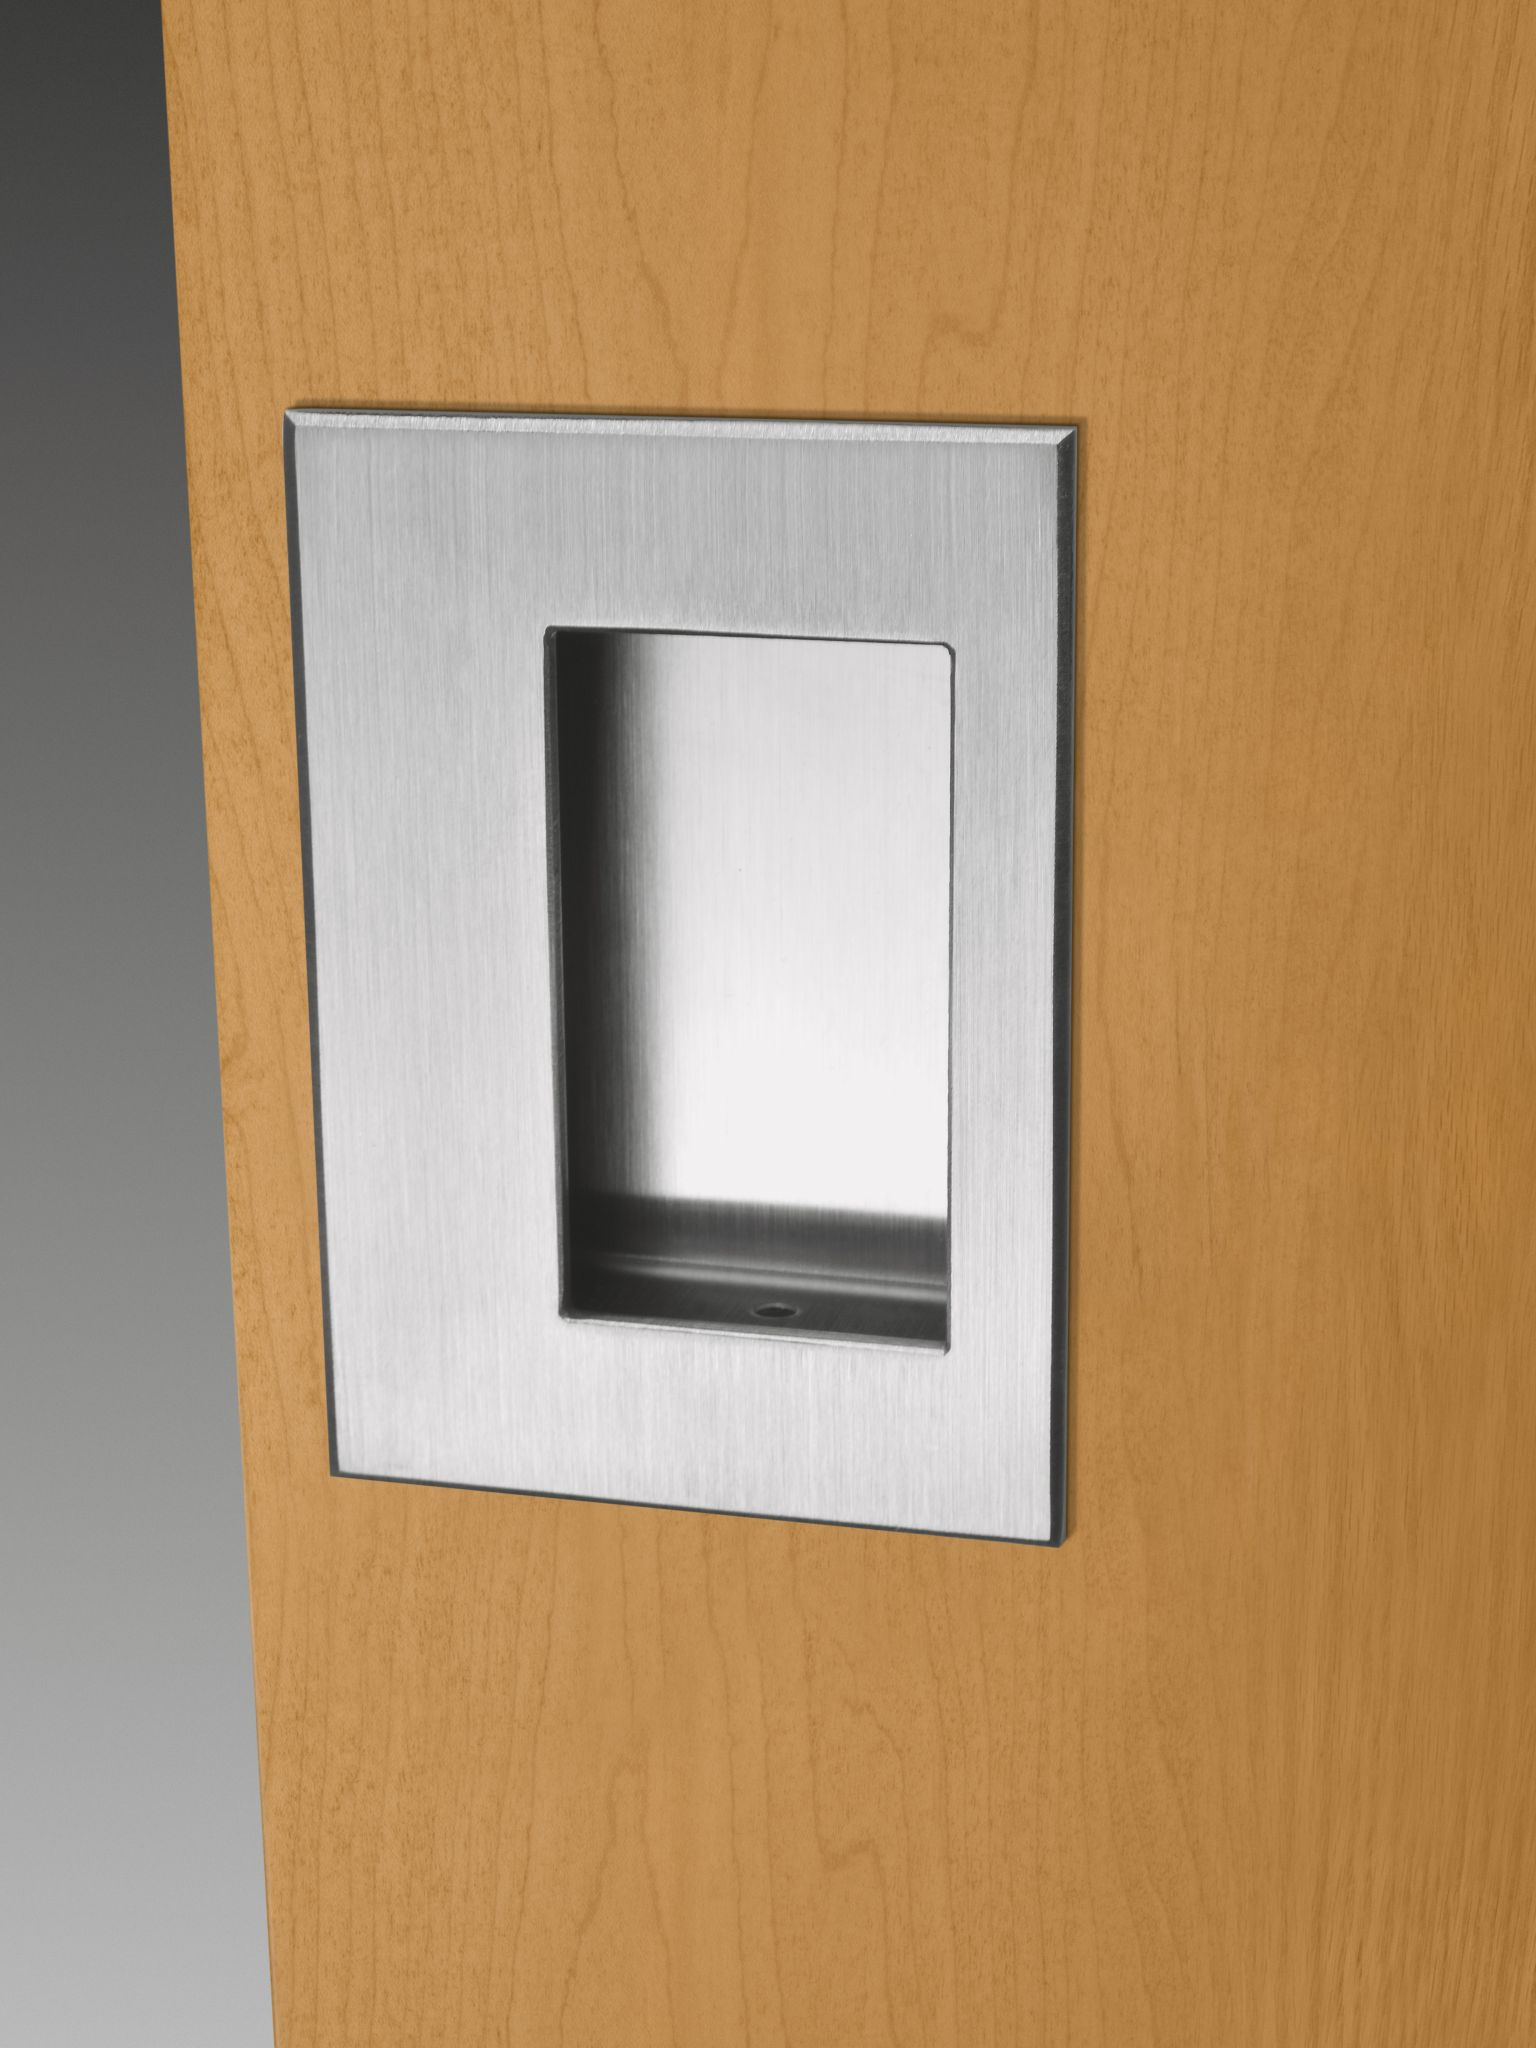 Door Security Equipment